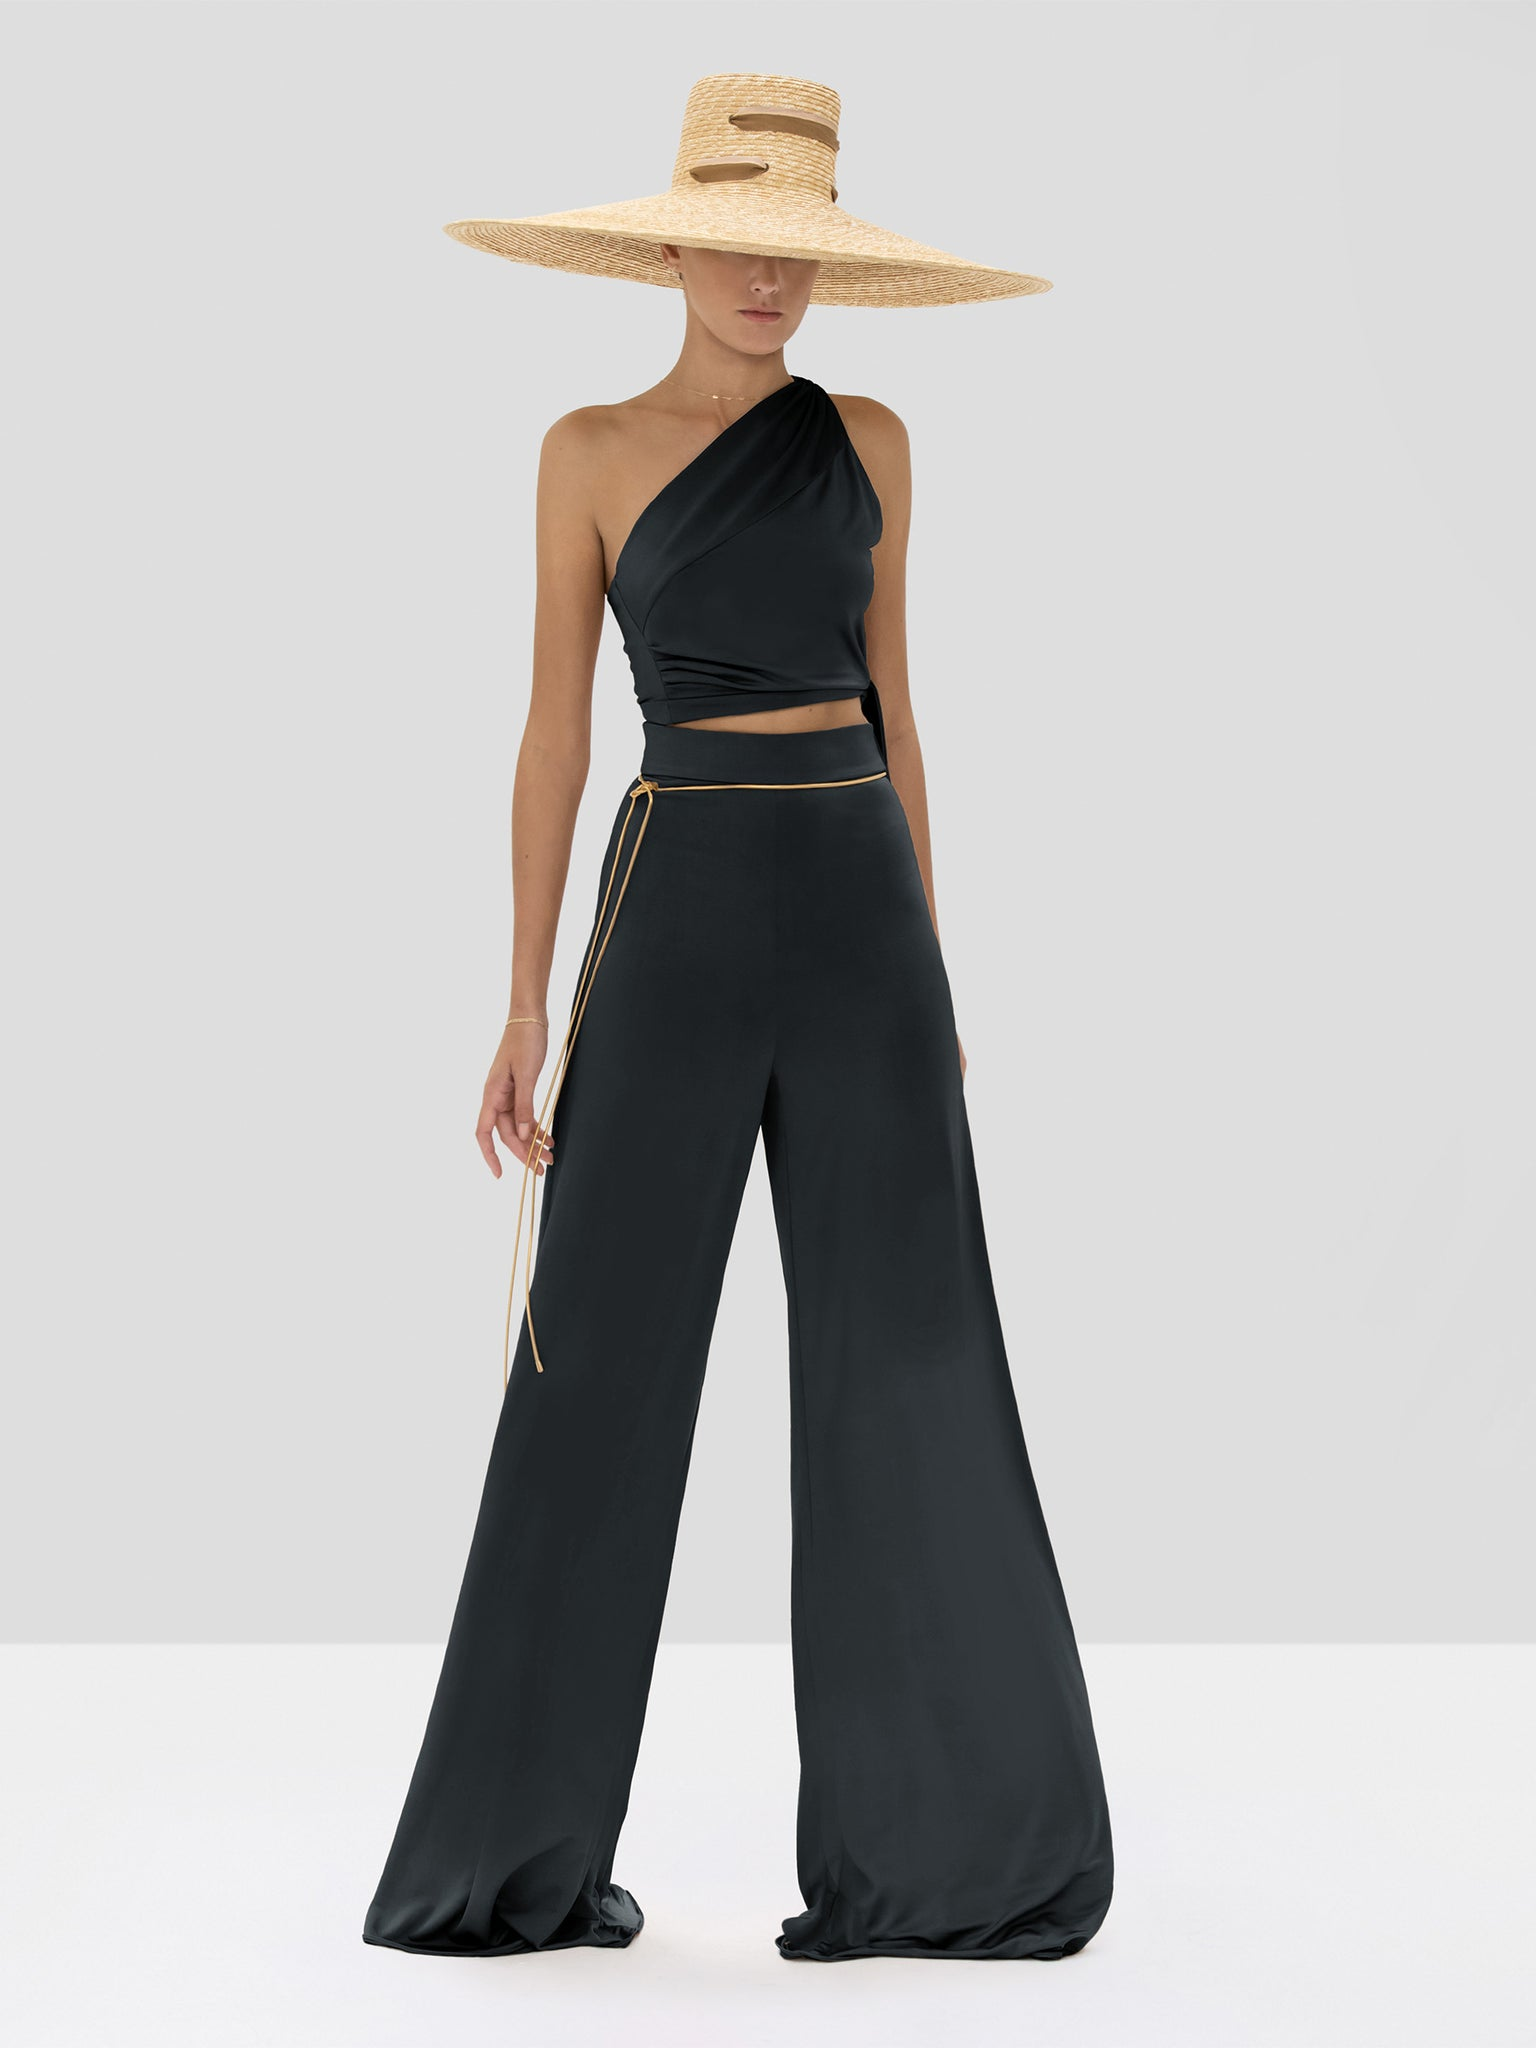 Alexis Gwen Top and Camilo Pant in Black from the Spring Summer 2020 Collection